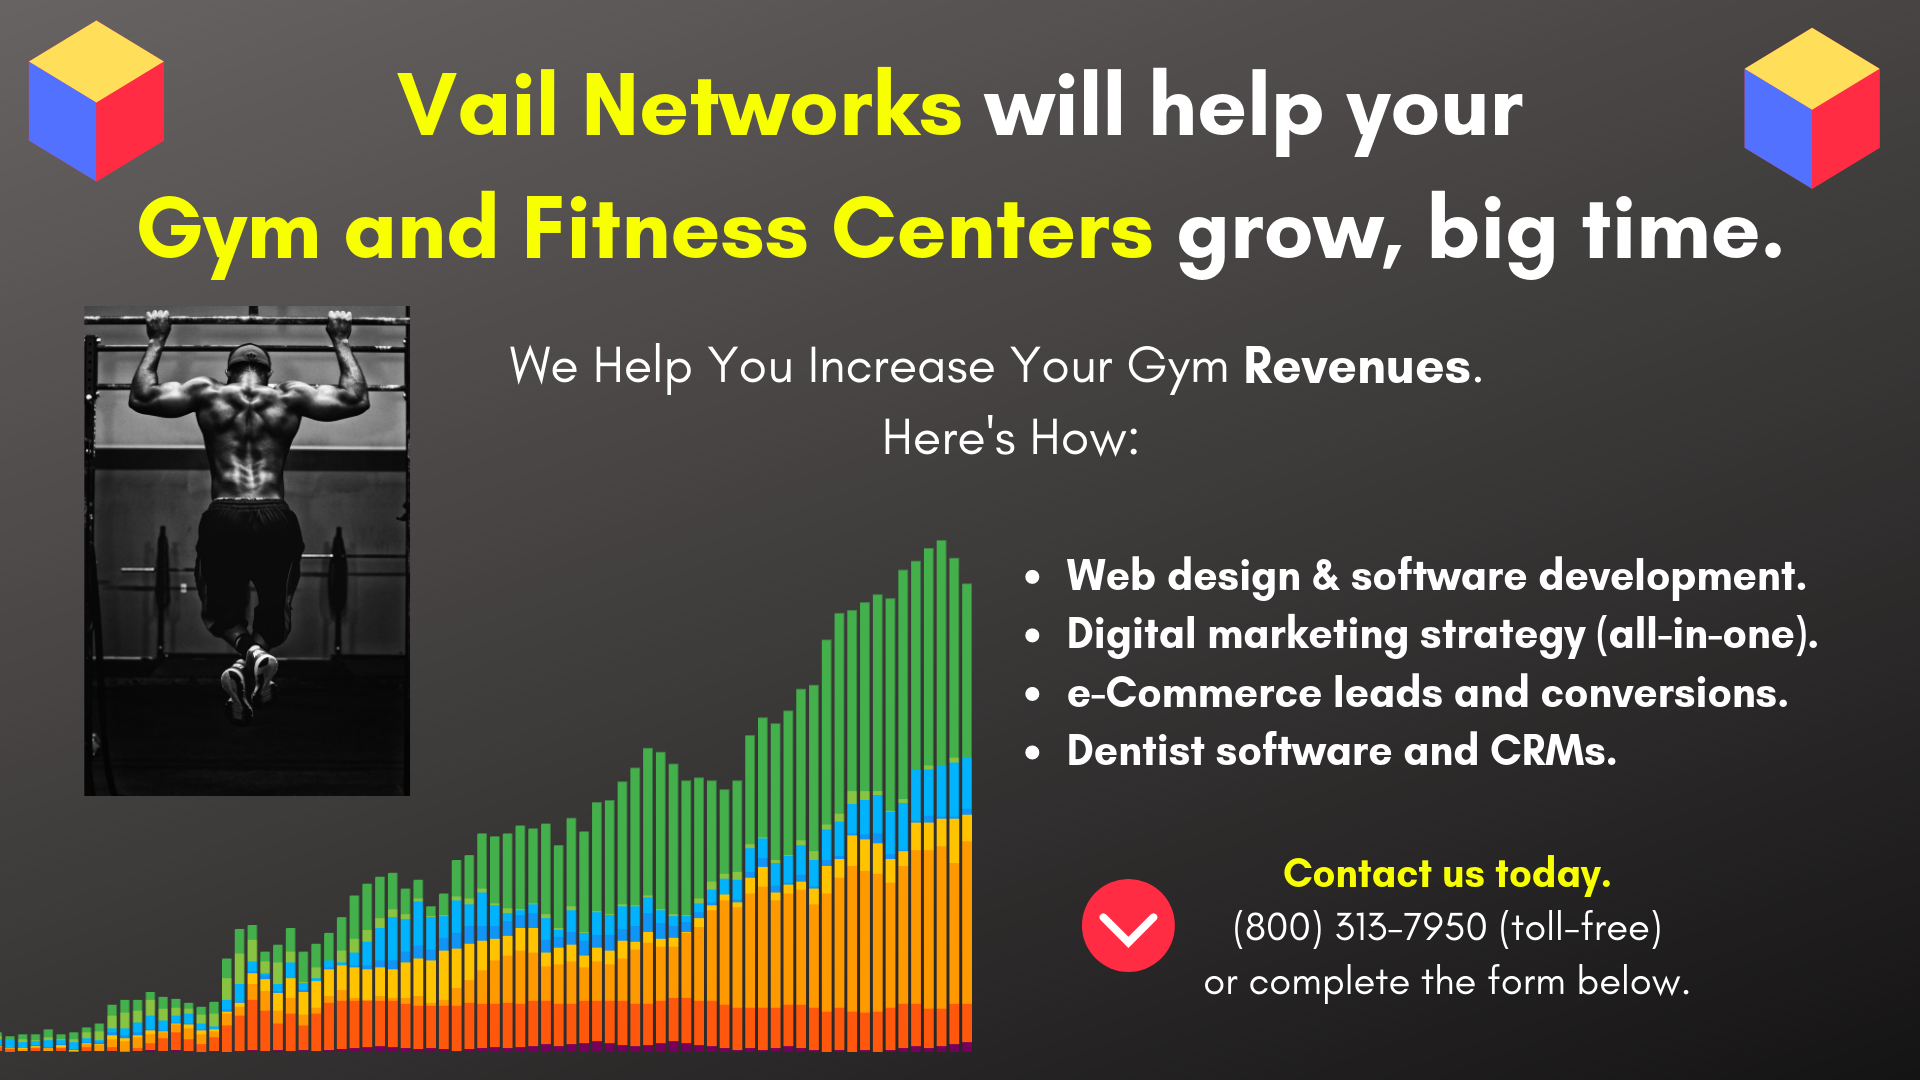 Company to help with gym and fitness center marketing, SEO and website development: vailnetworks.com